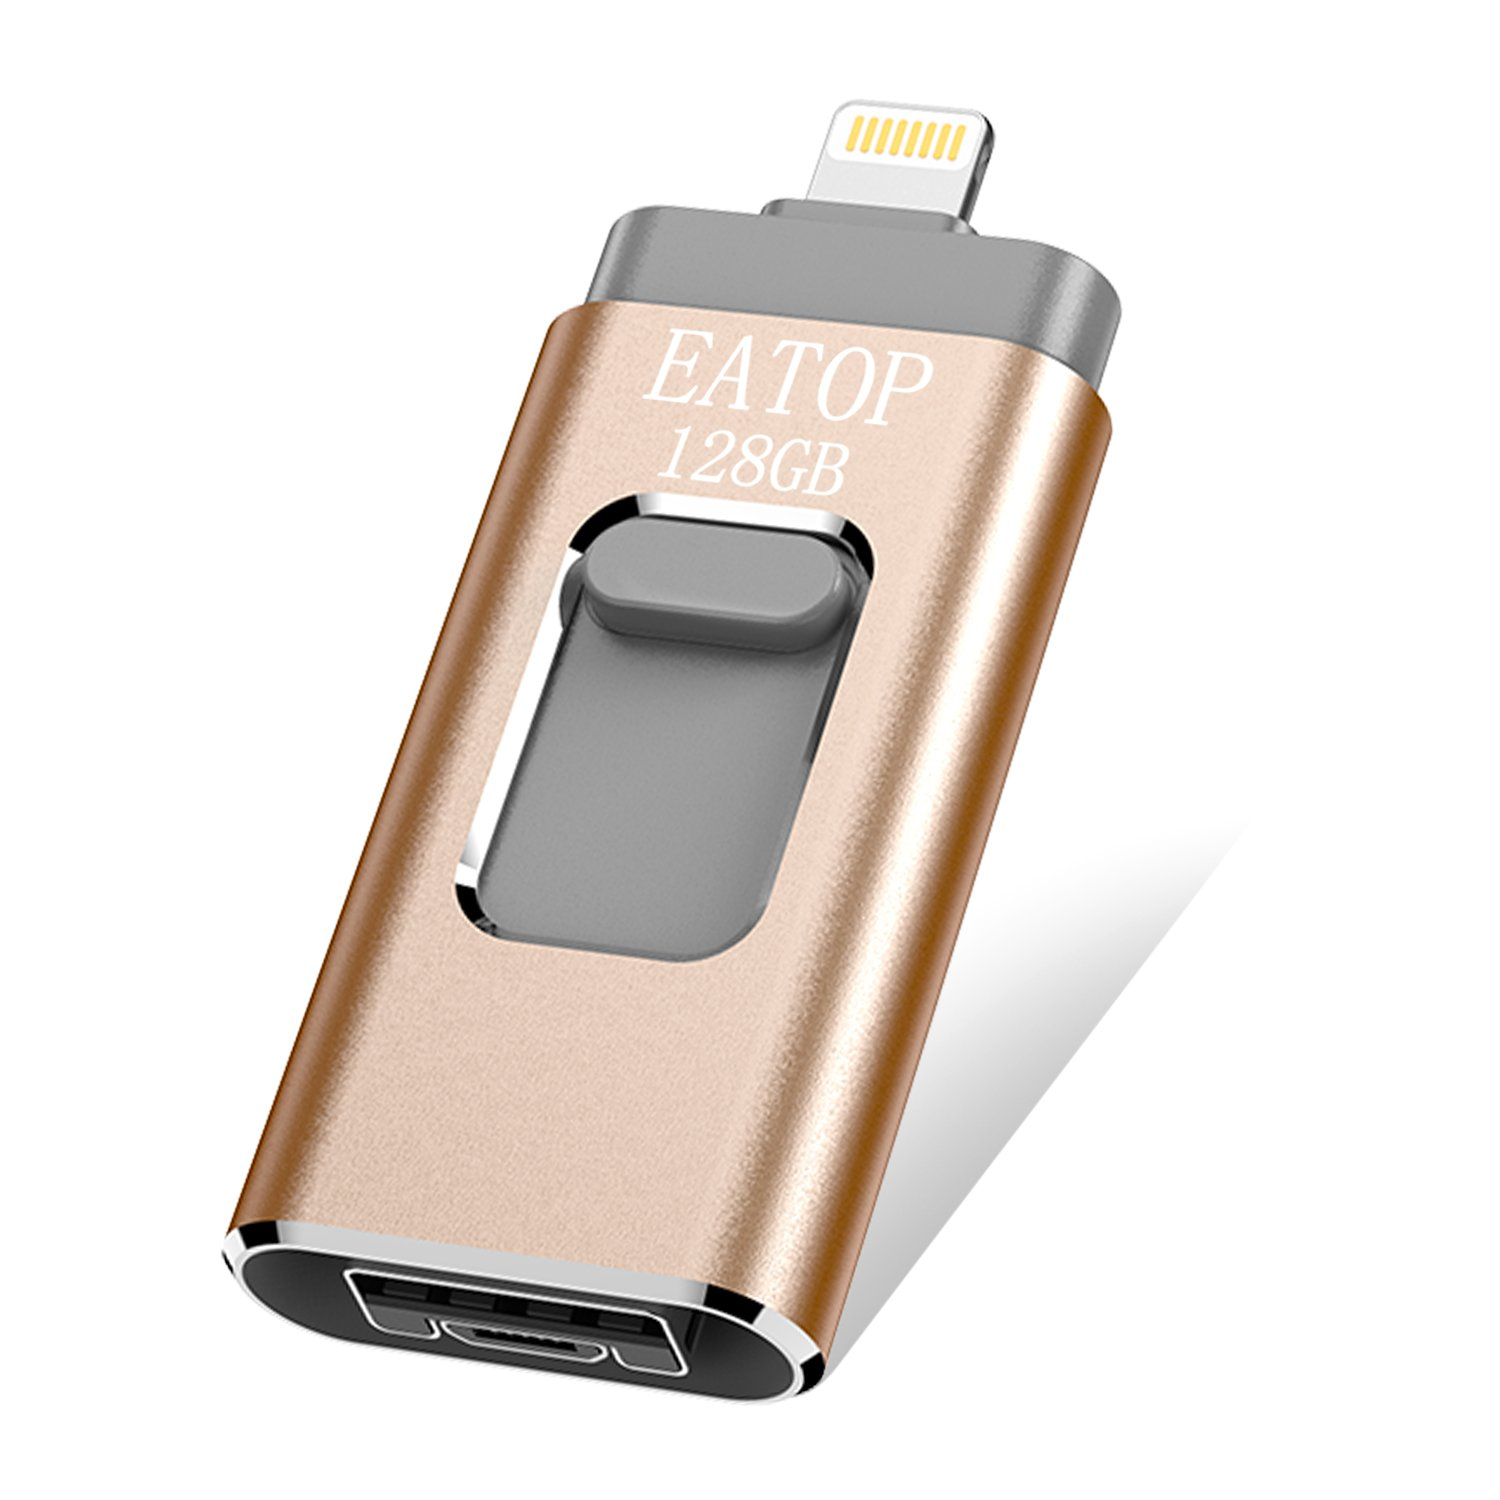 USB Flash Drives 128GB iPhone Memory Stick,EATOP External Storage Memory Stick Adapter Expansion for iPod/iPhone / iPad/Android & Computers (Gold)